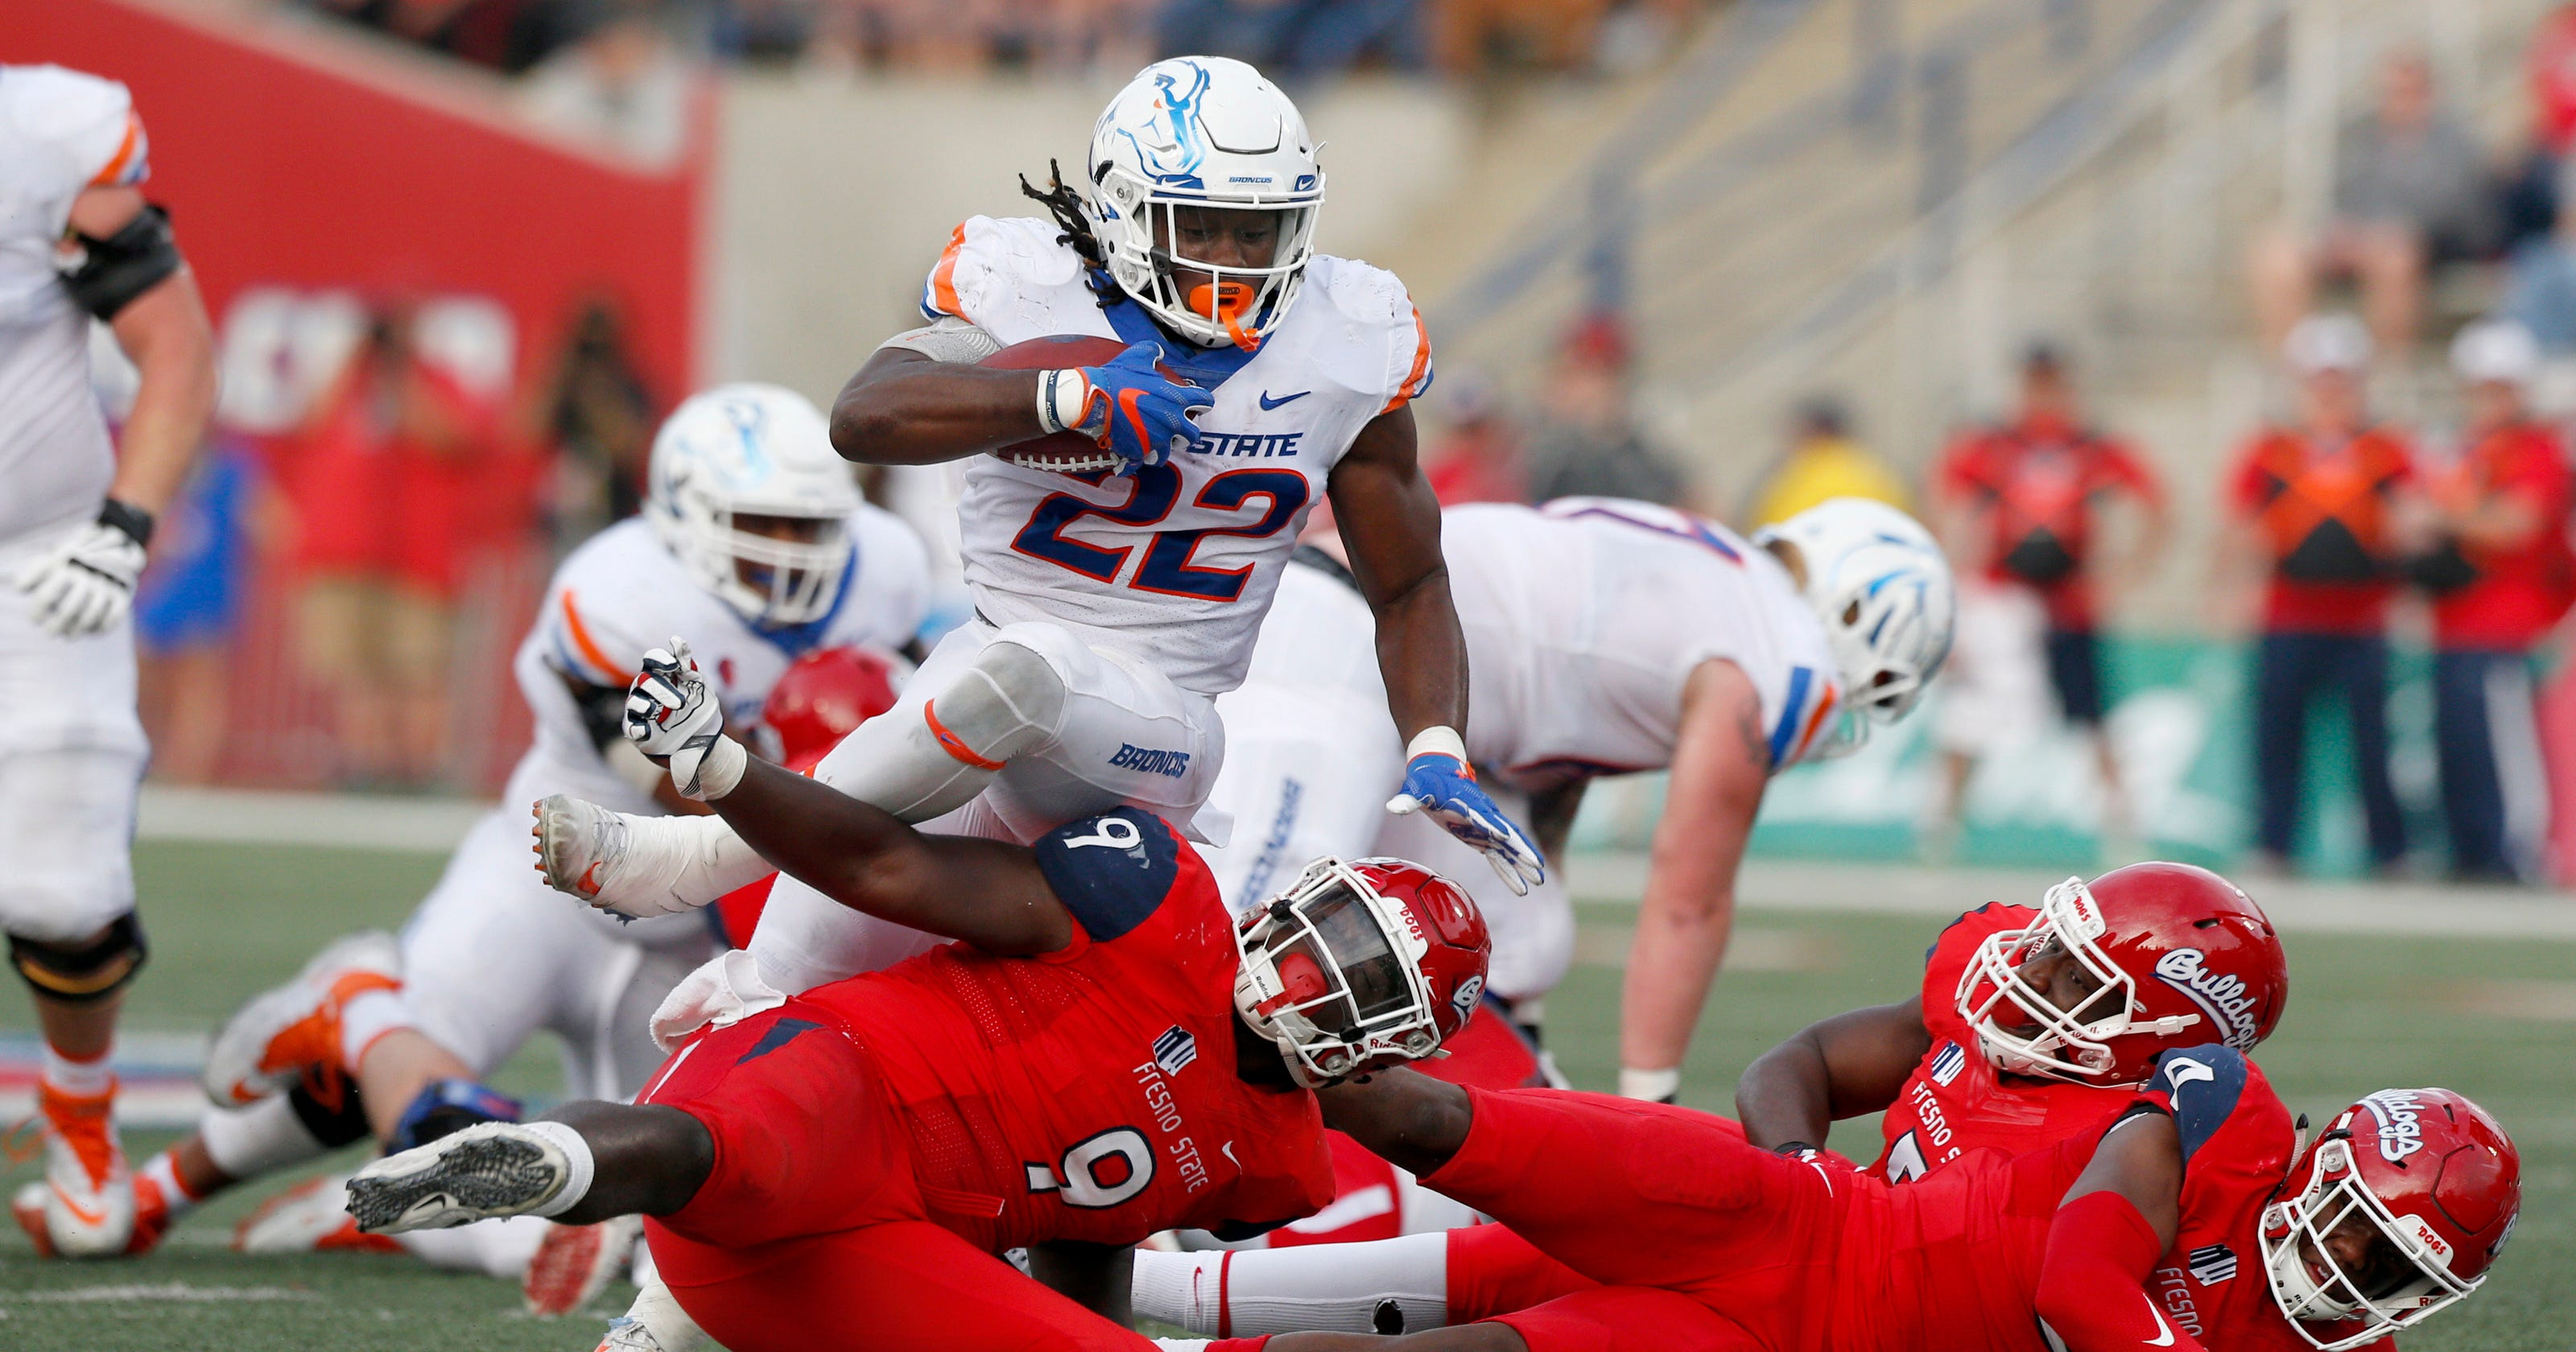 Mountain West rankings: Fresno State, Boise State have key